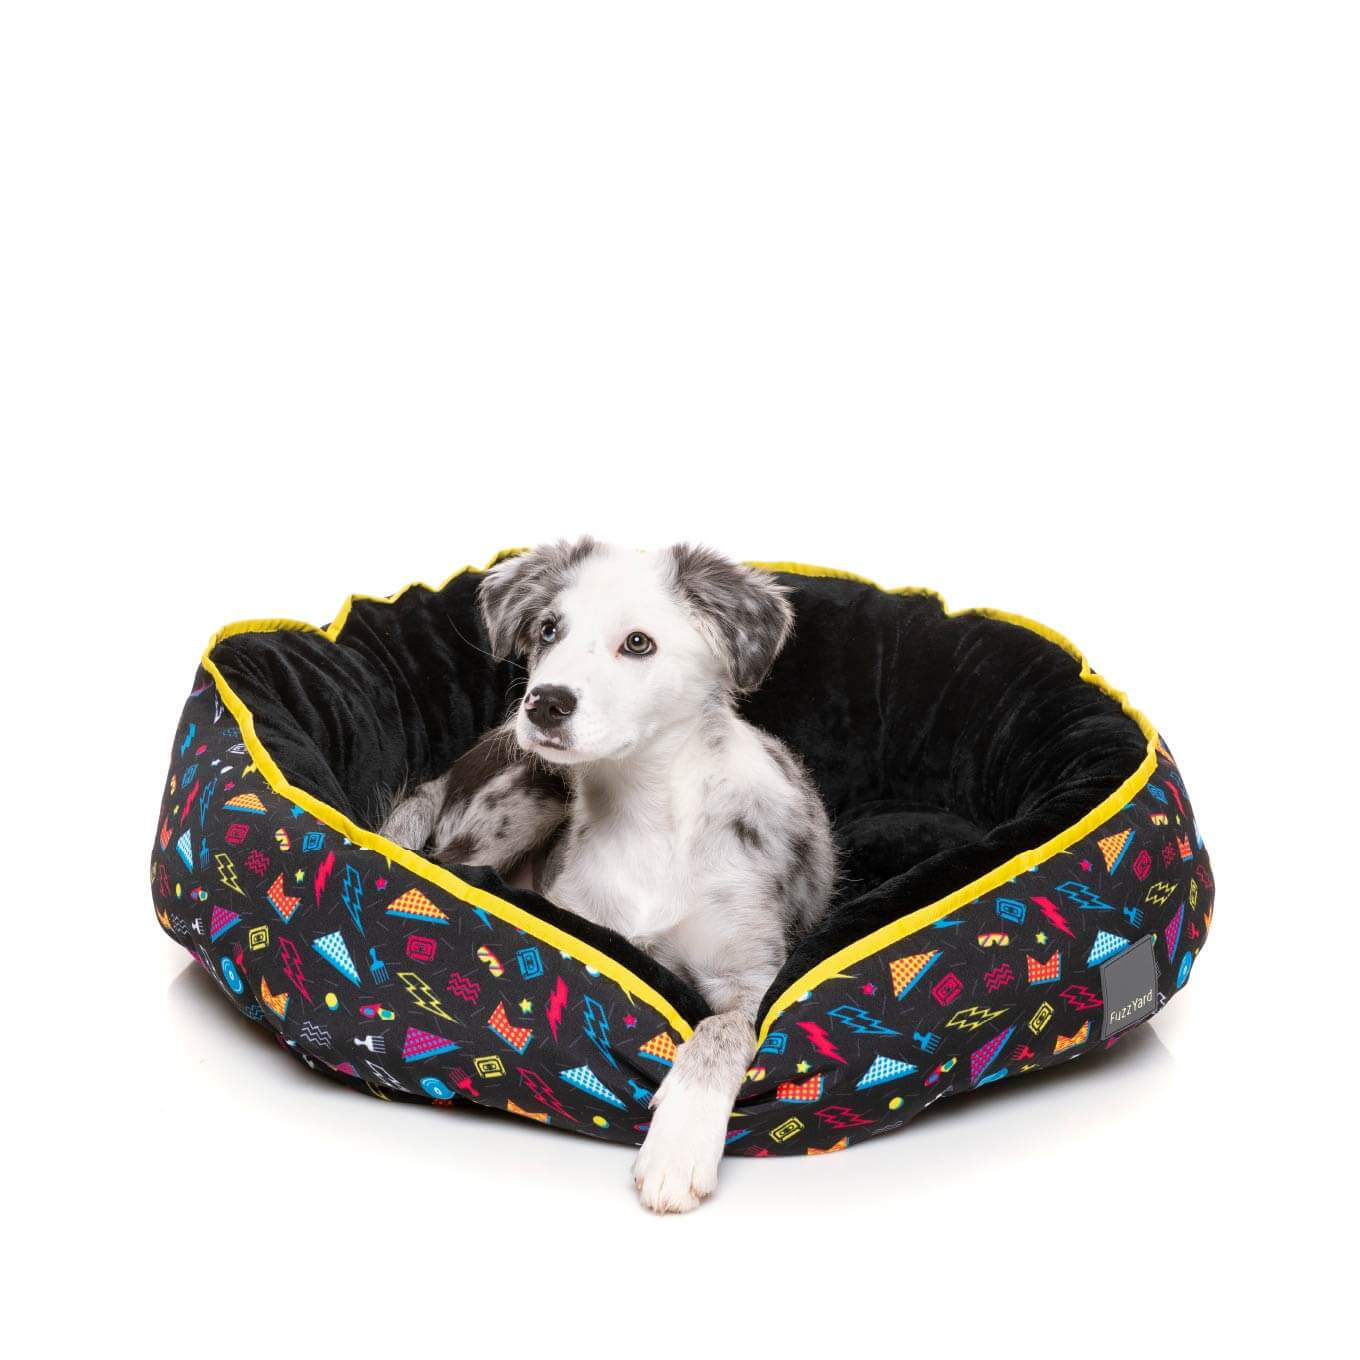 FuzzYard Bel Air Reversible Pet Bed - Beds, Cats, Dogs, FuzzYard, New - Vanillapup - Online Pet Shop